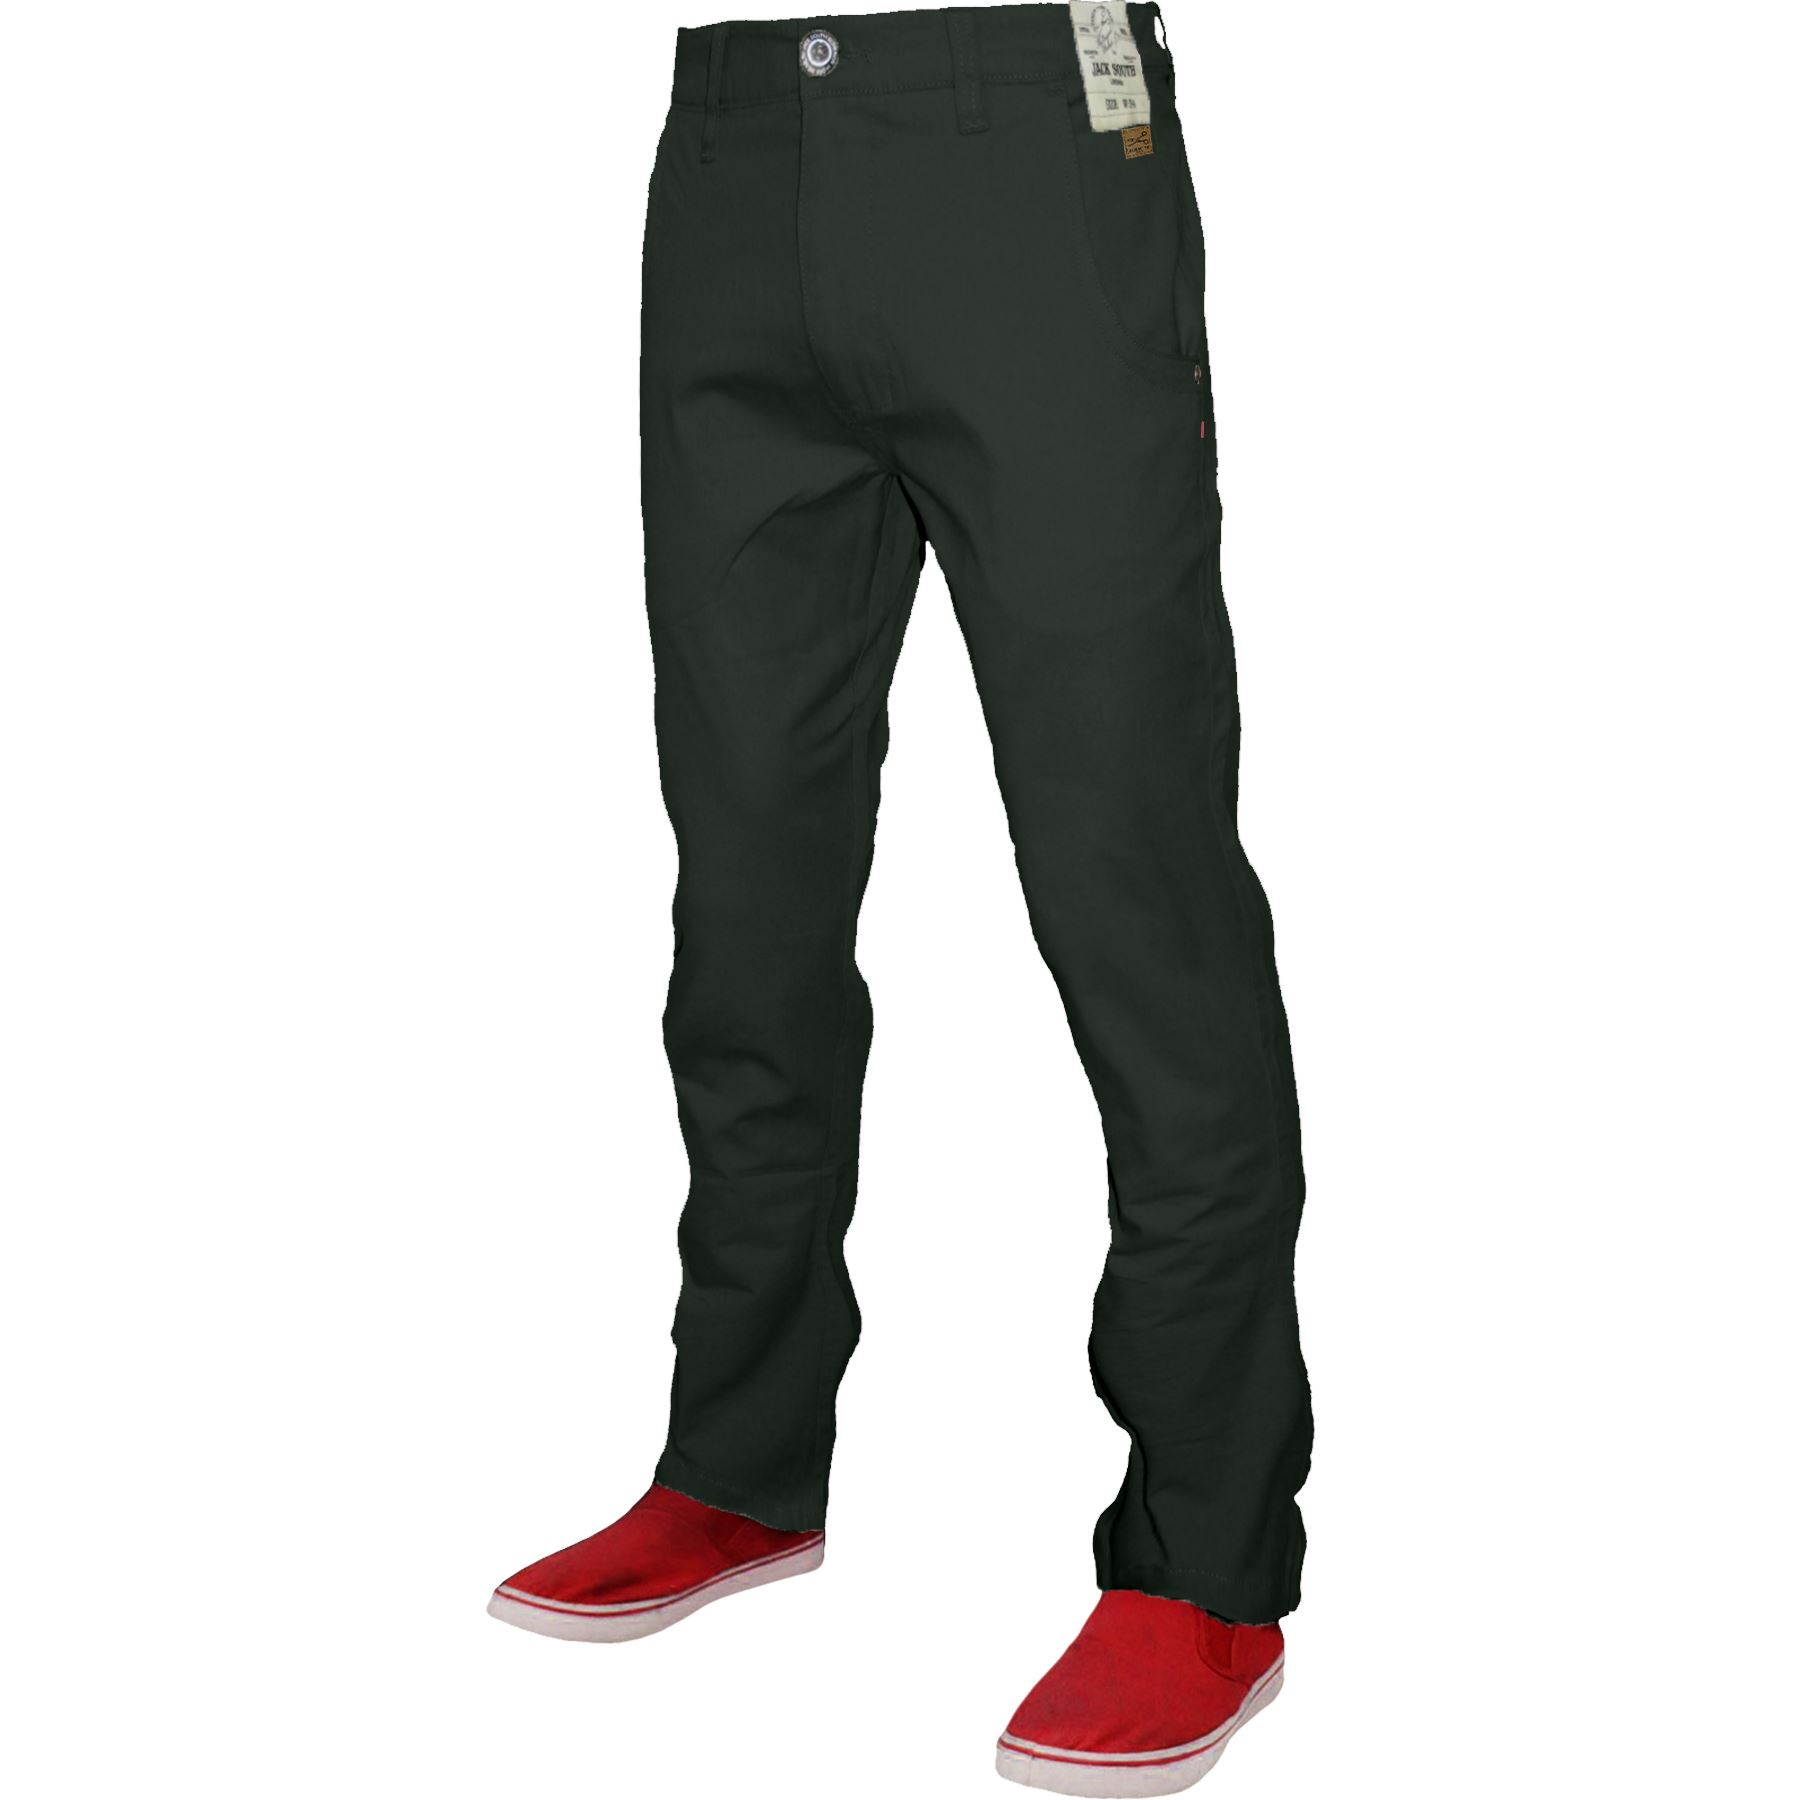 Mens-Chino-Classic-Regular-Fit-Trouser-Casual-Stretch-Spandex-Pants-Size-32-40 thumbnail 6